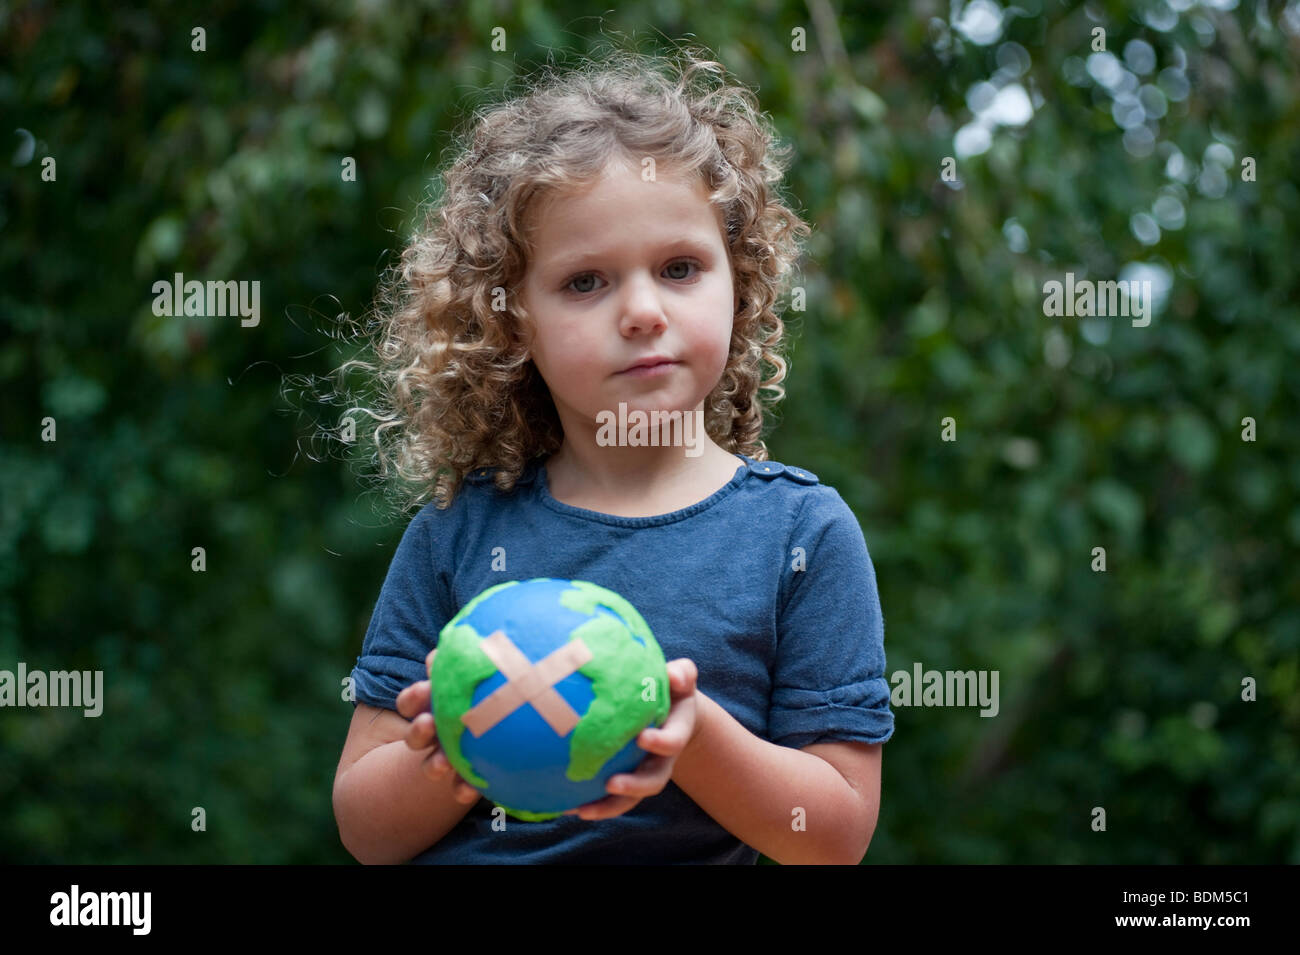 Young girl holding a model of a sick  planet Earth with a Band Aid attached - Stock Image